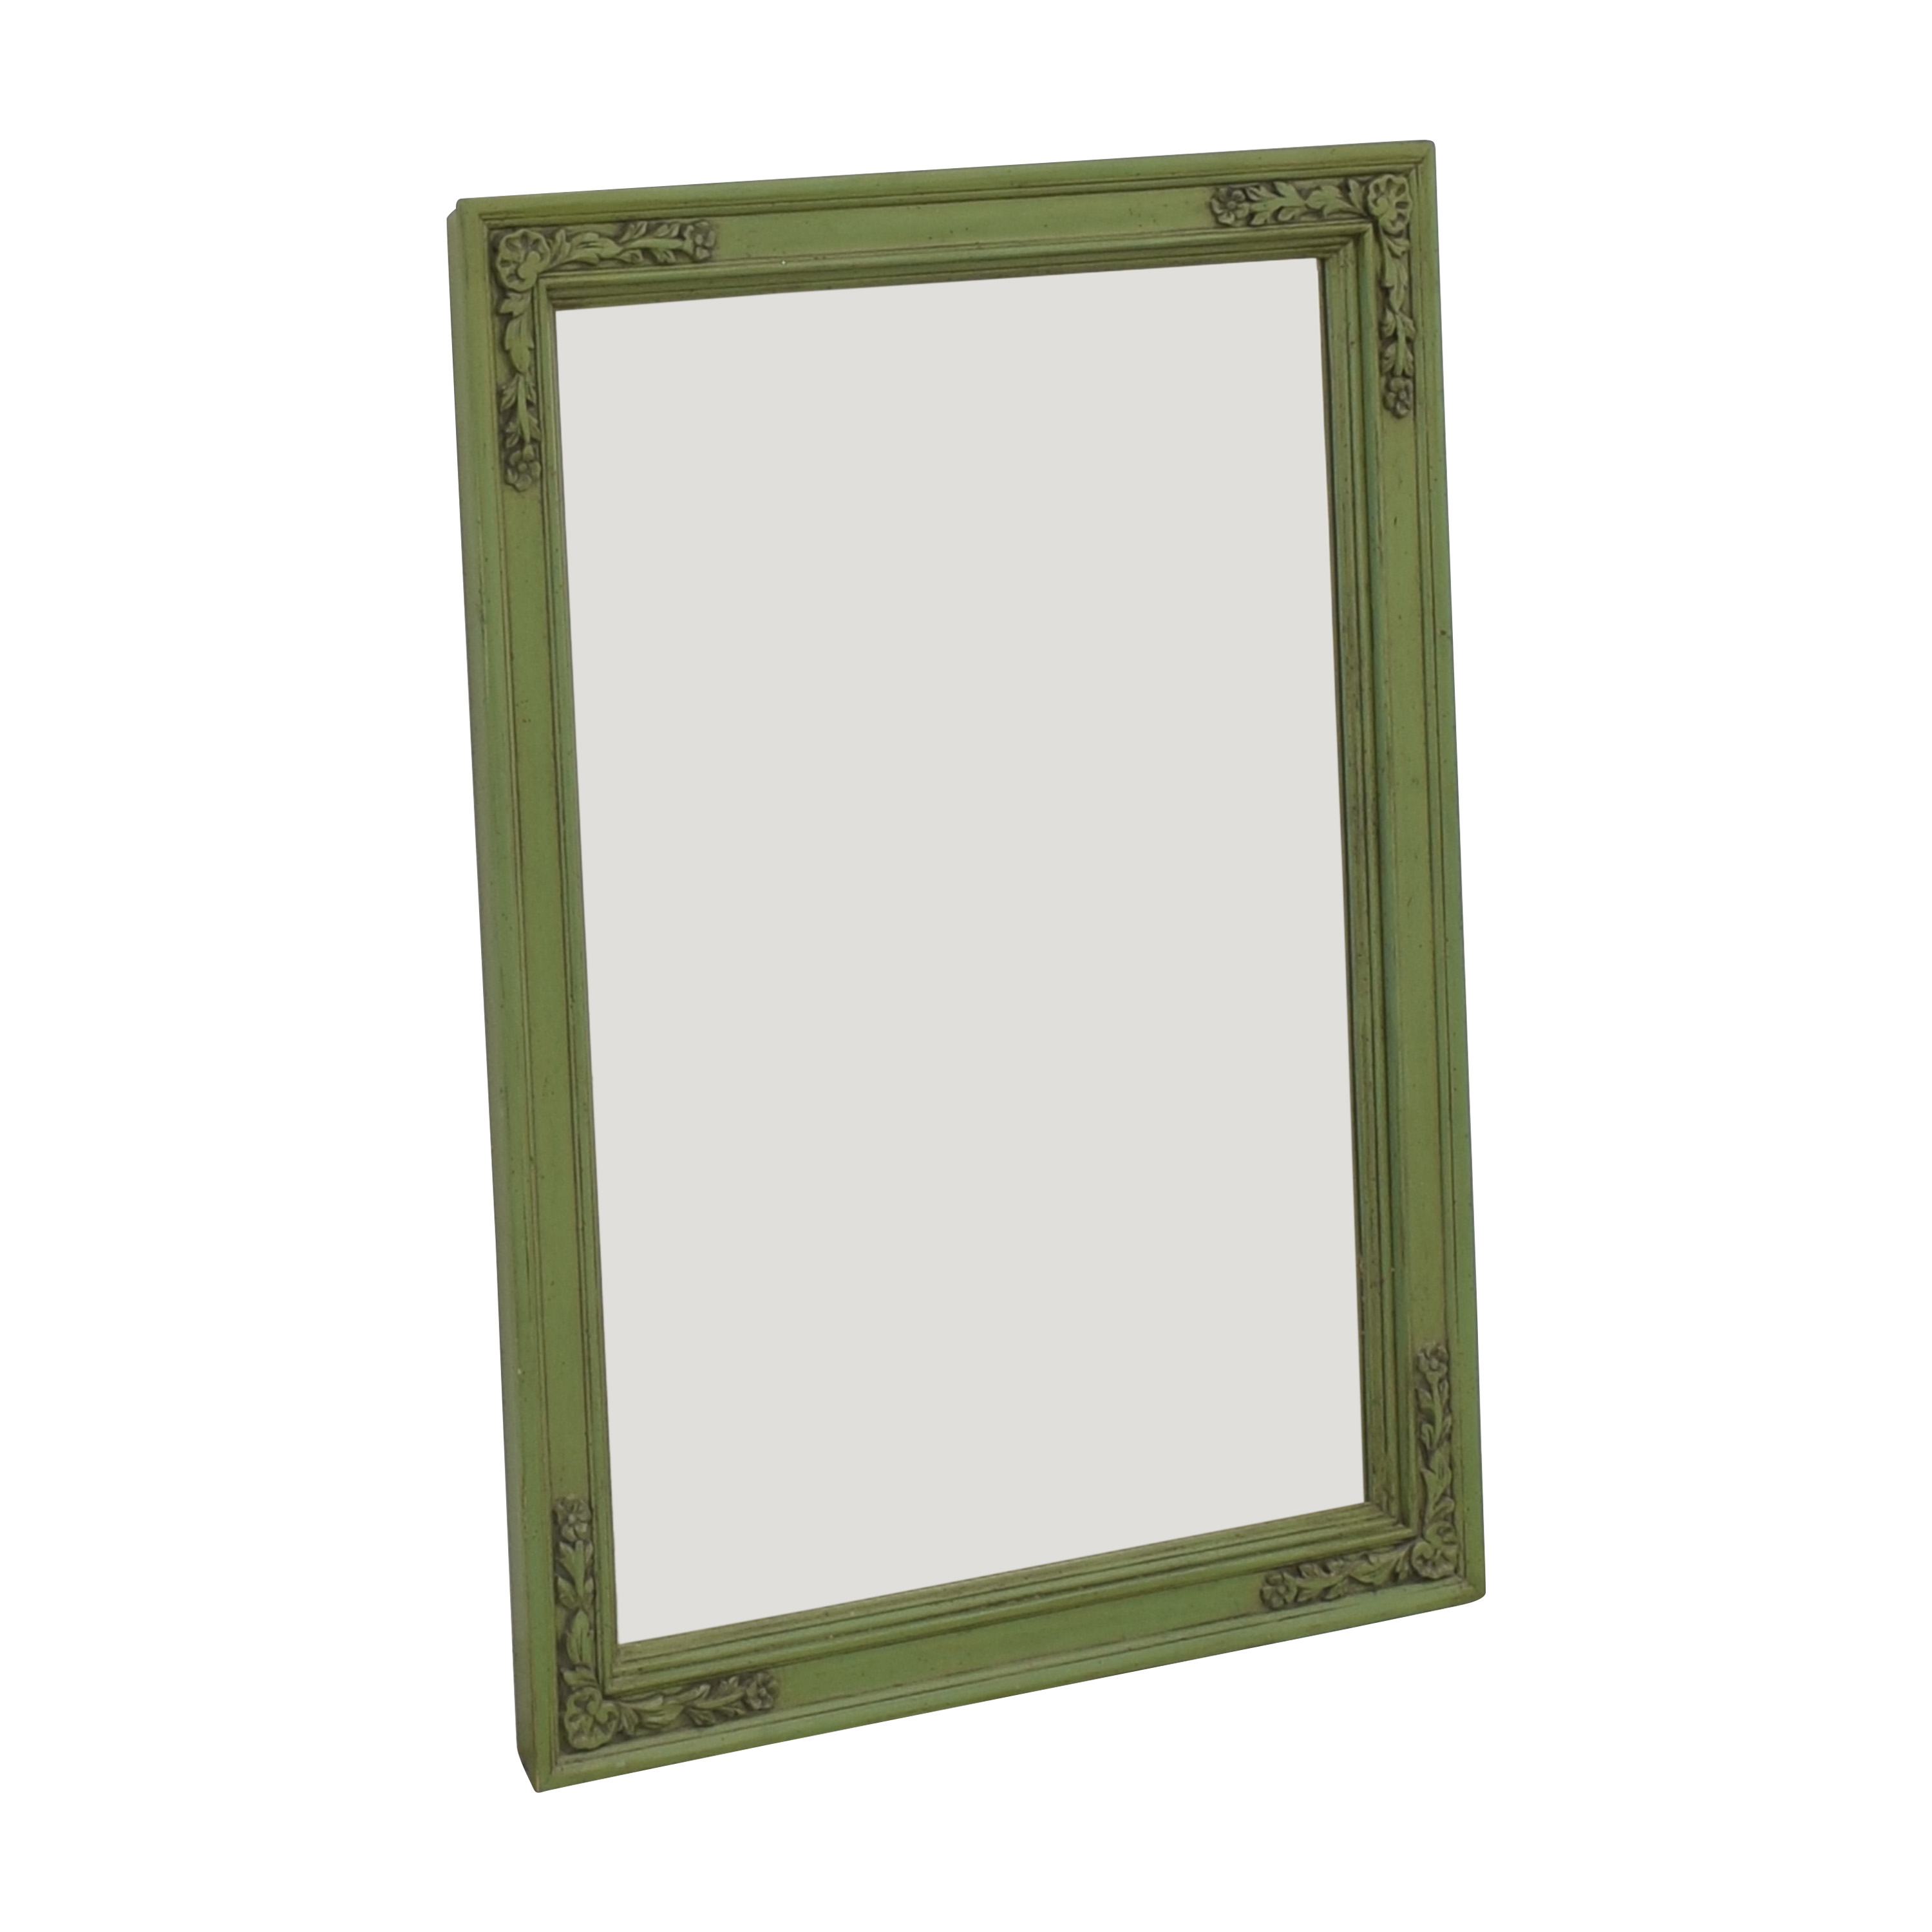 Guy Chaddock & Co. Guy Chaddock & Co. Framed Mirror with Floral Carving coupon